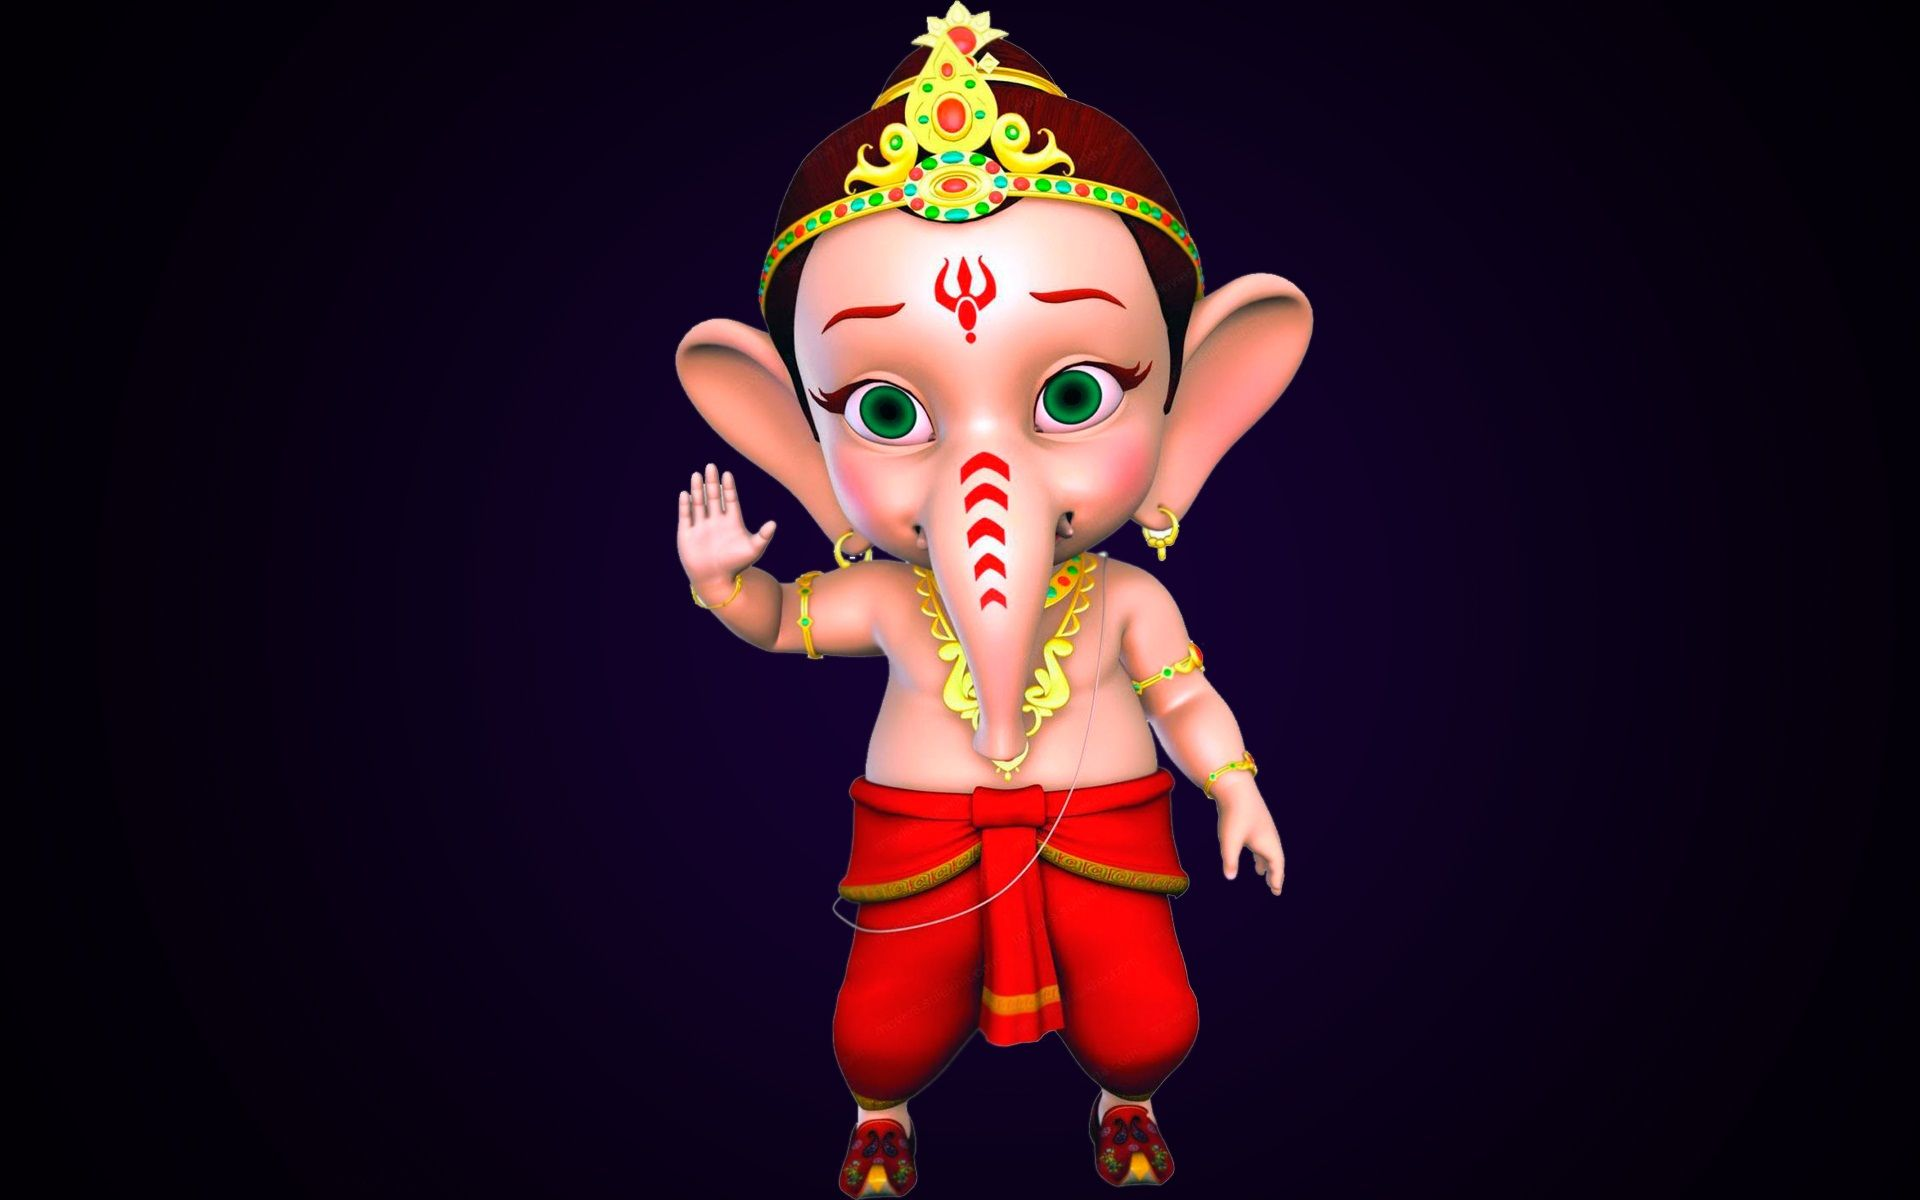 Bal Ganesh Animation Hd Wallpaper Beautiful Hd Wallpaper Wallpaper